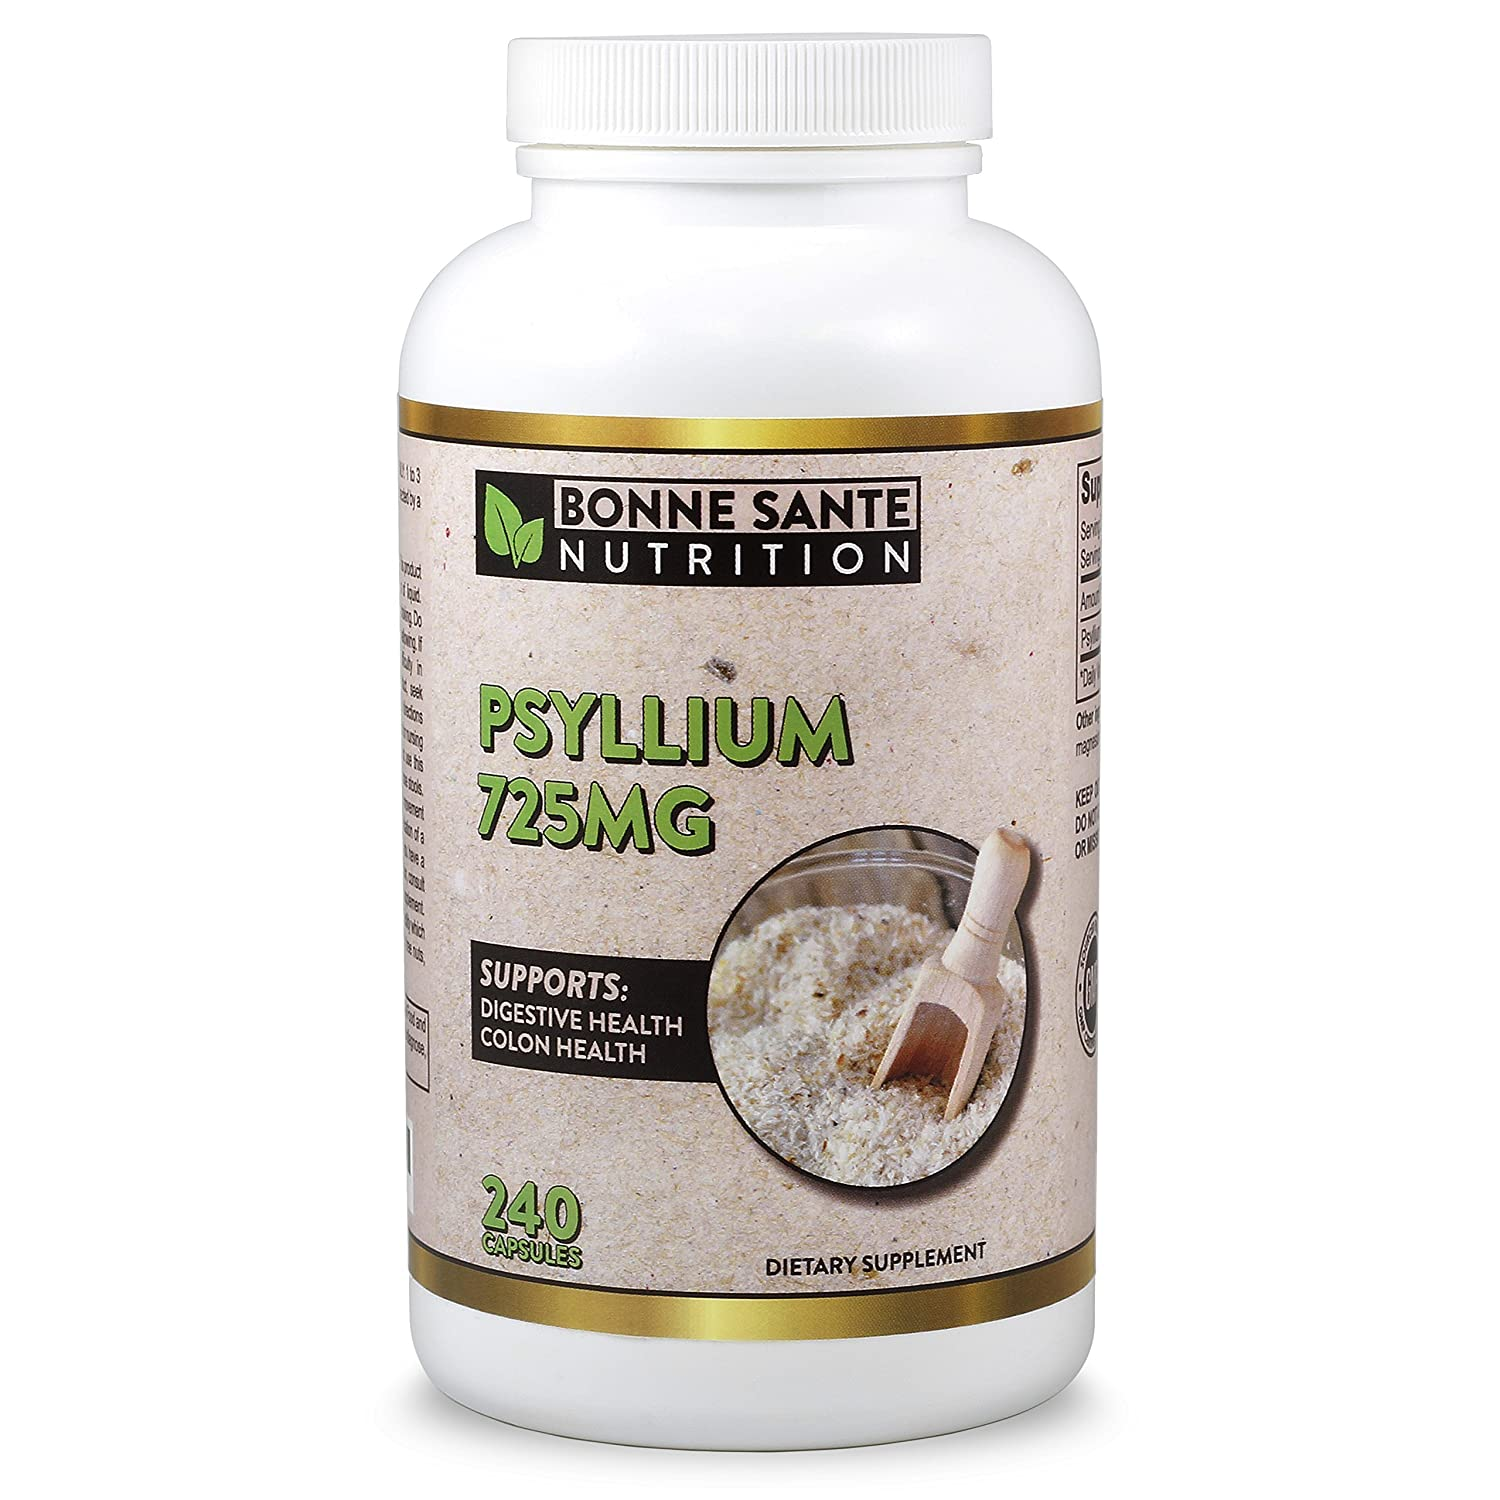 Psyllium Husk by Bonne Sante Nutrition, 240 Psyllium Husk Capsules, 725 mg Per Serving, Supports Healthy Digestive System, All Natural, 100% Soluble Fiber